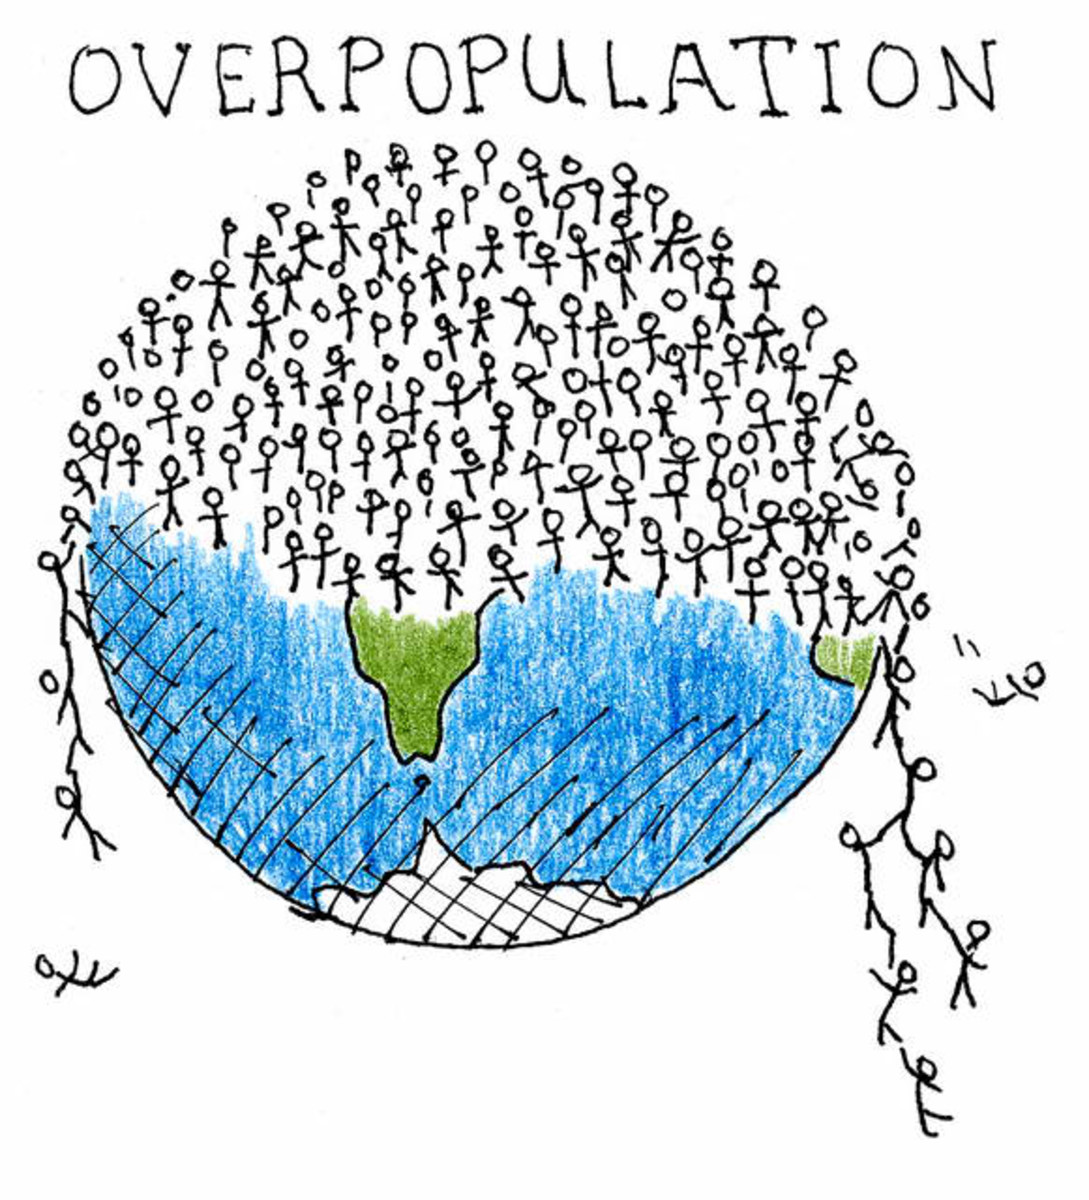 4 Effects of Overpopulation and Their Possible Solutions